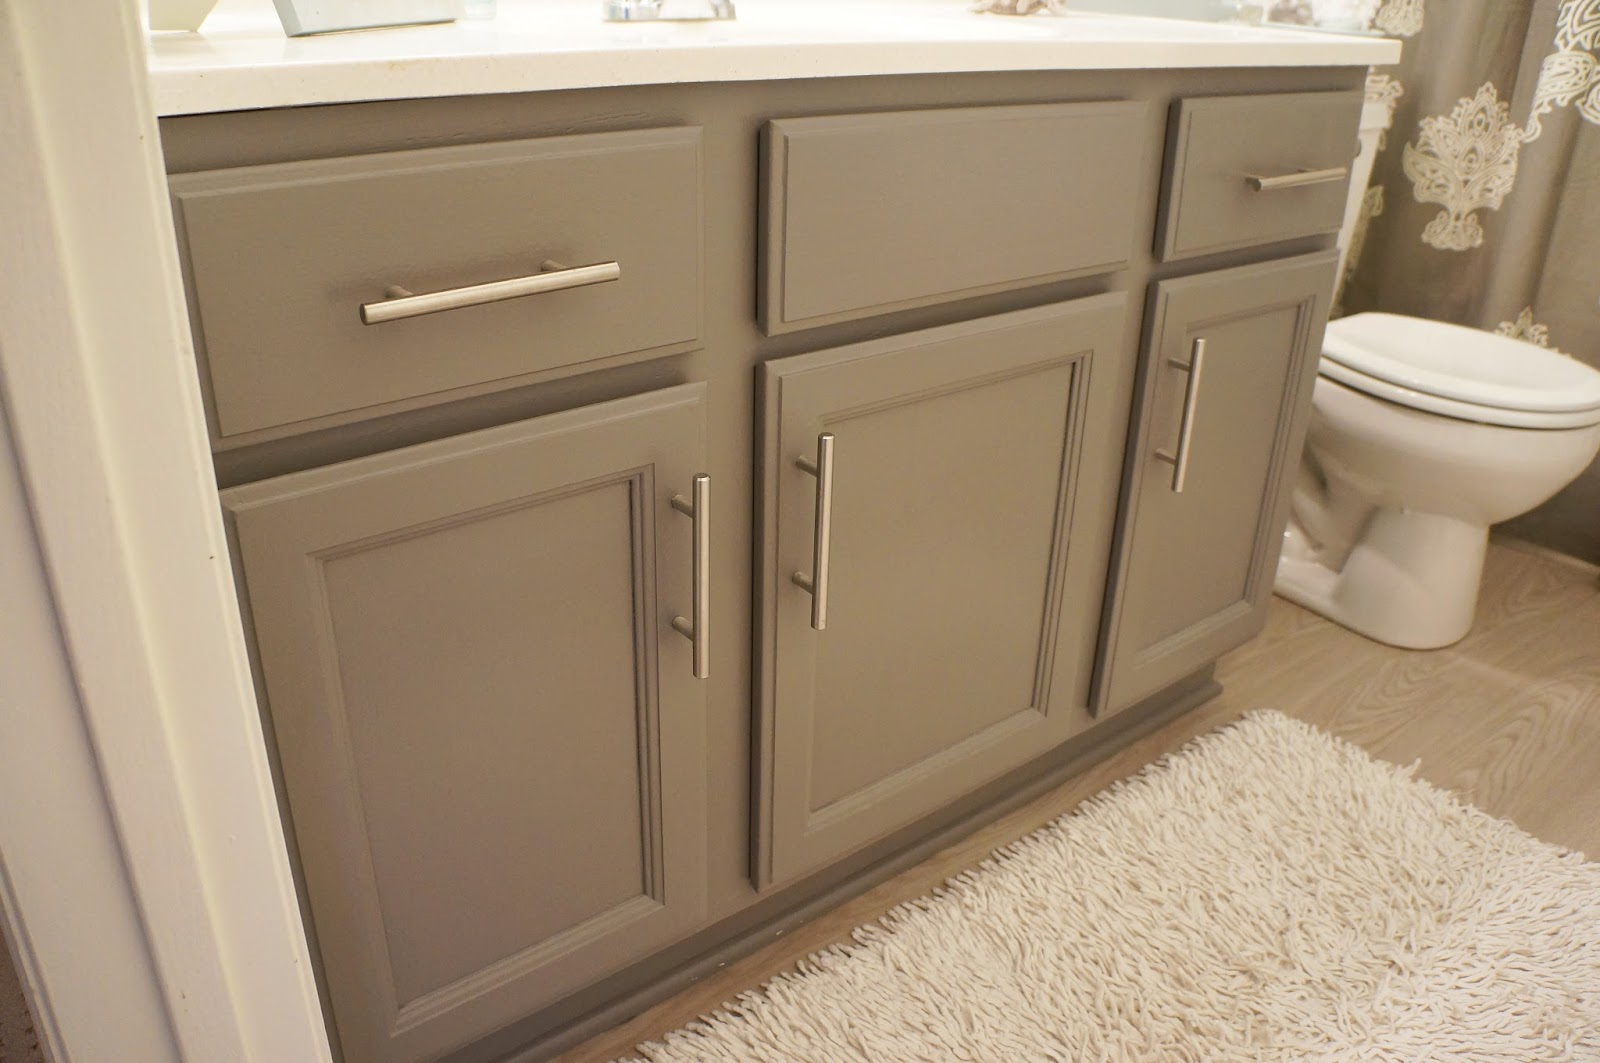 It 39 s a pretty prins life bathroom redo the before - How to redo bathroom cabinets for cheap ...